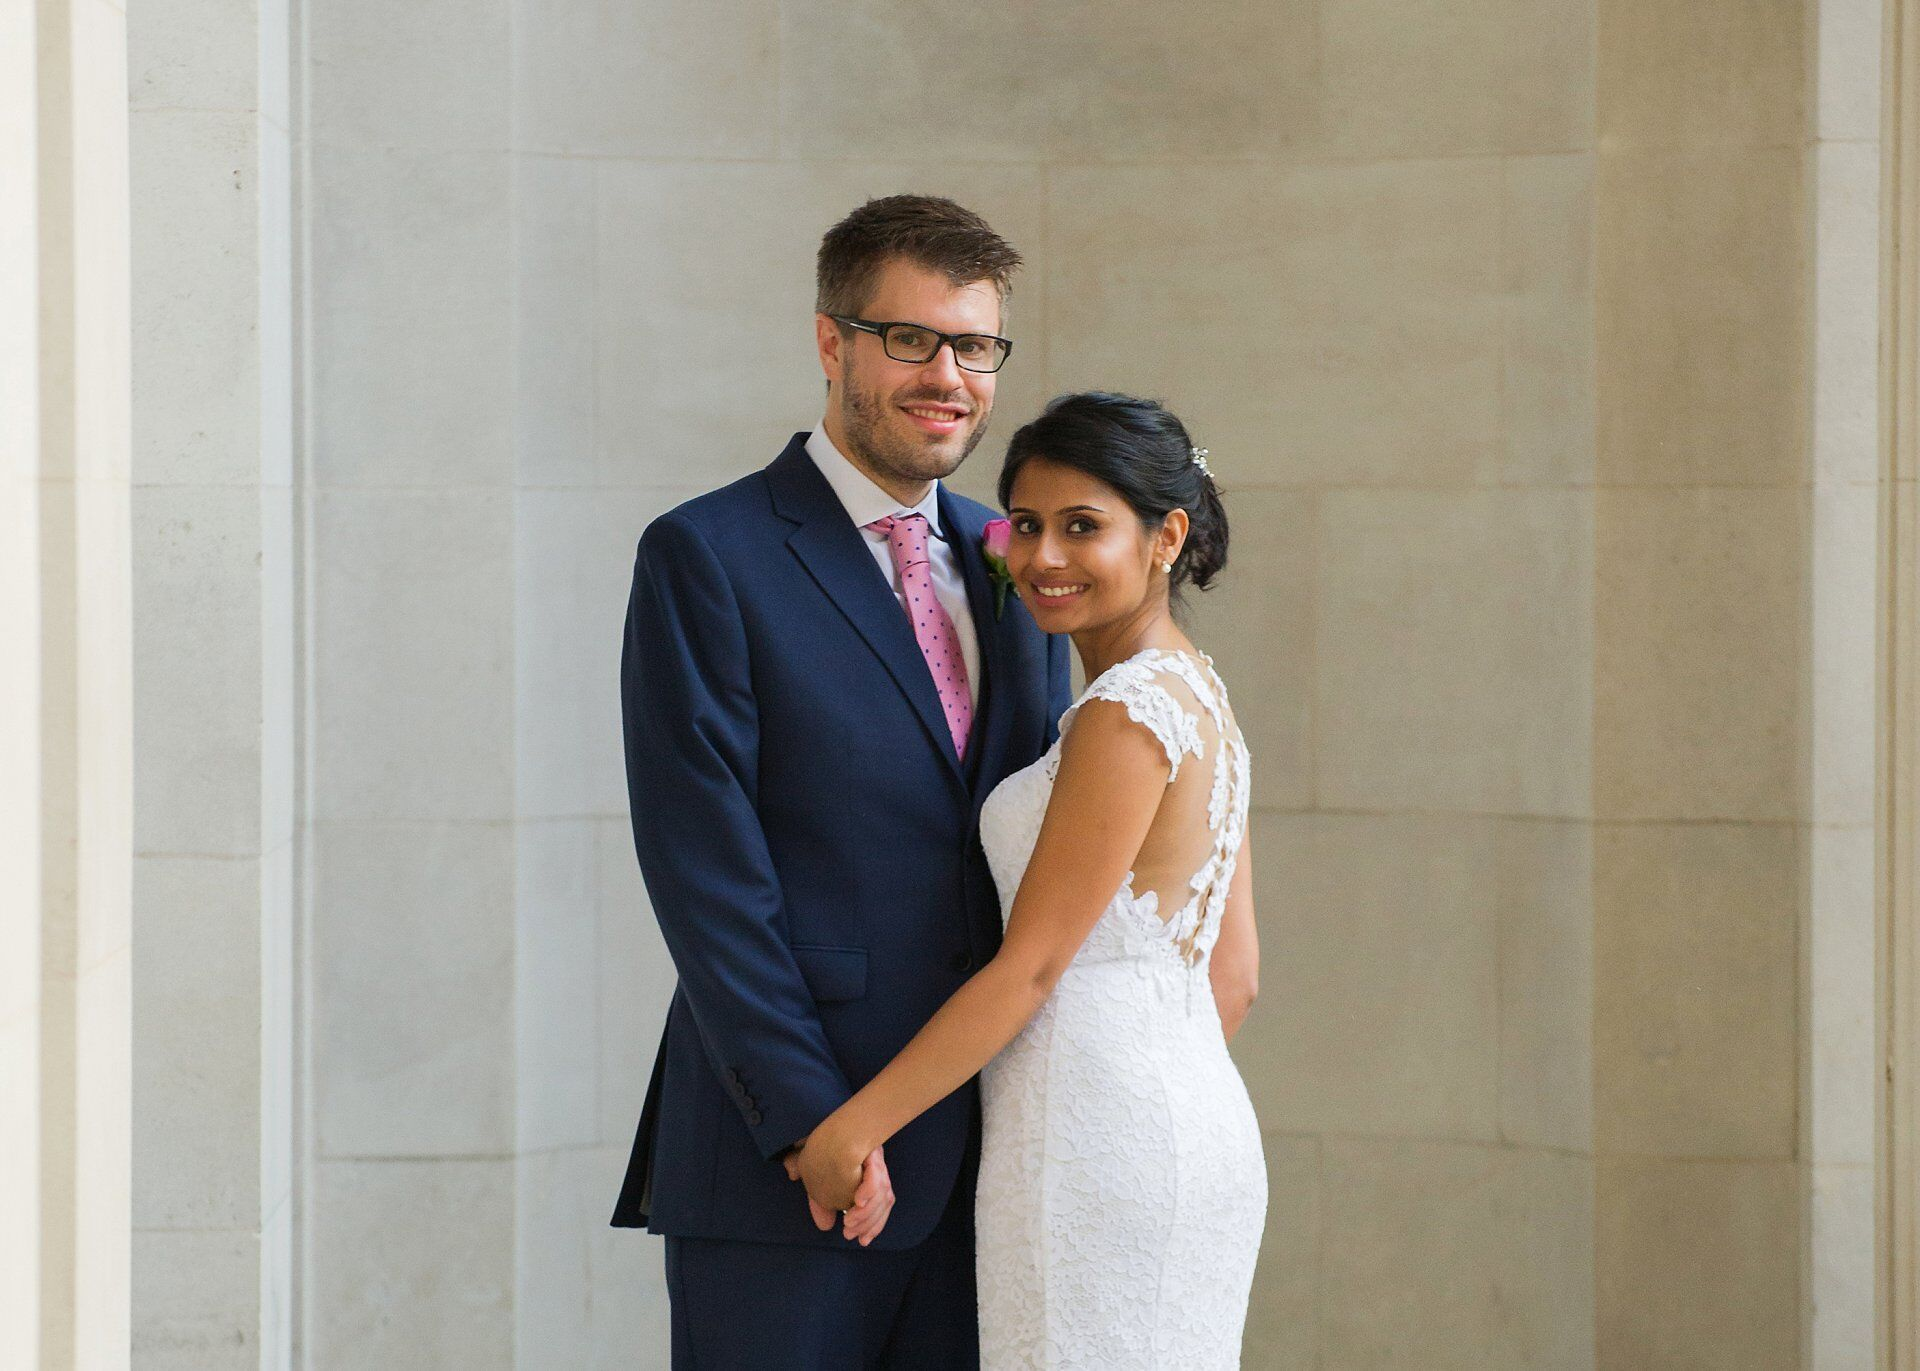 old marylebone town hall wedding photographer anglo-indian civil marriage